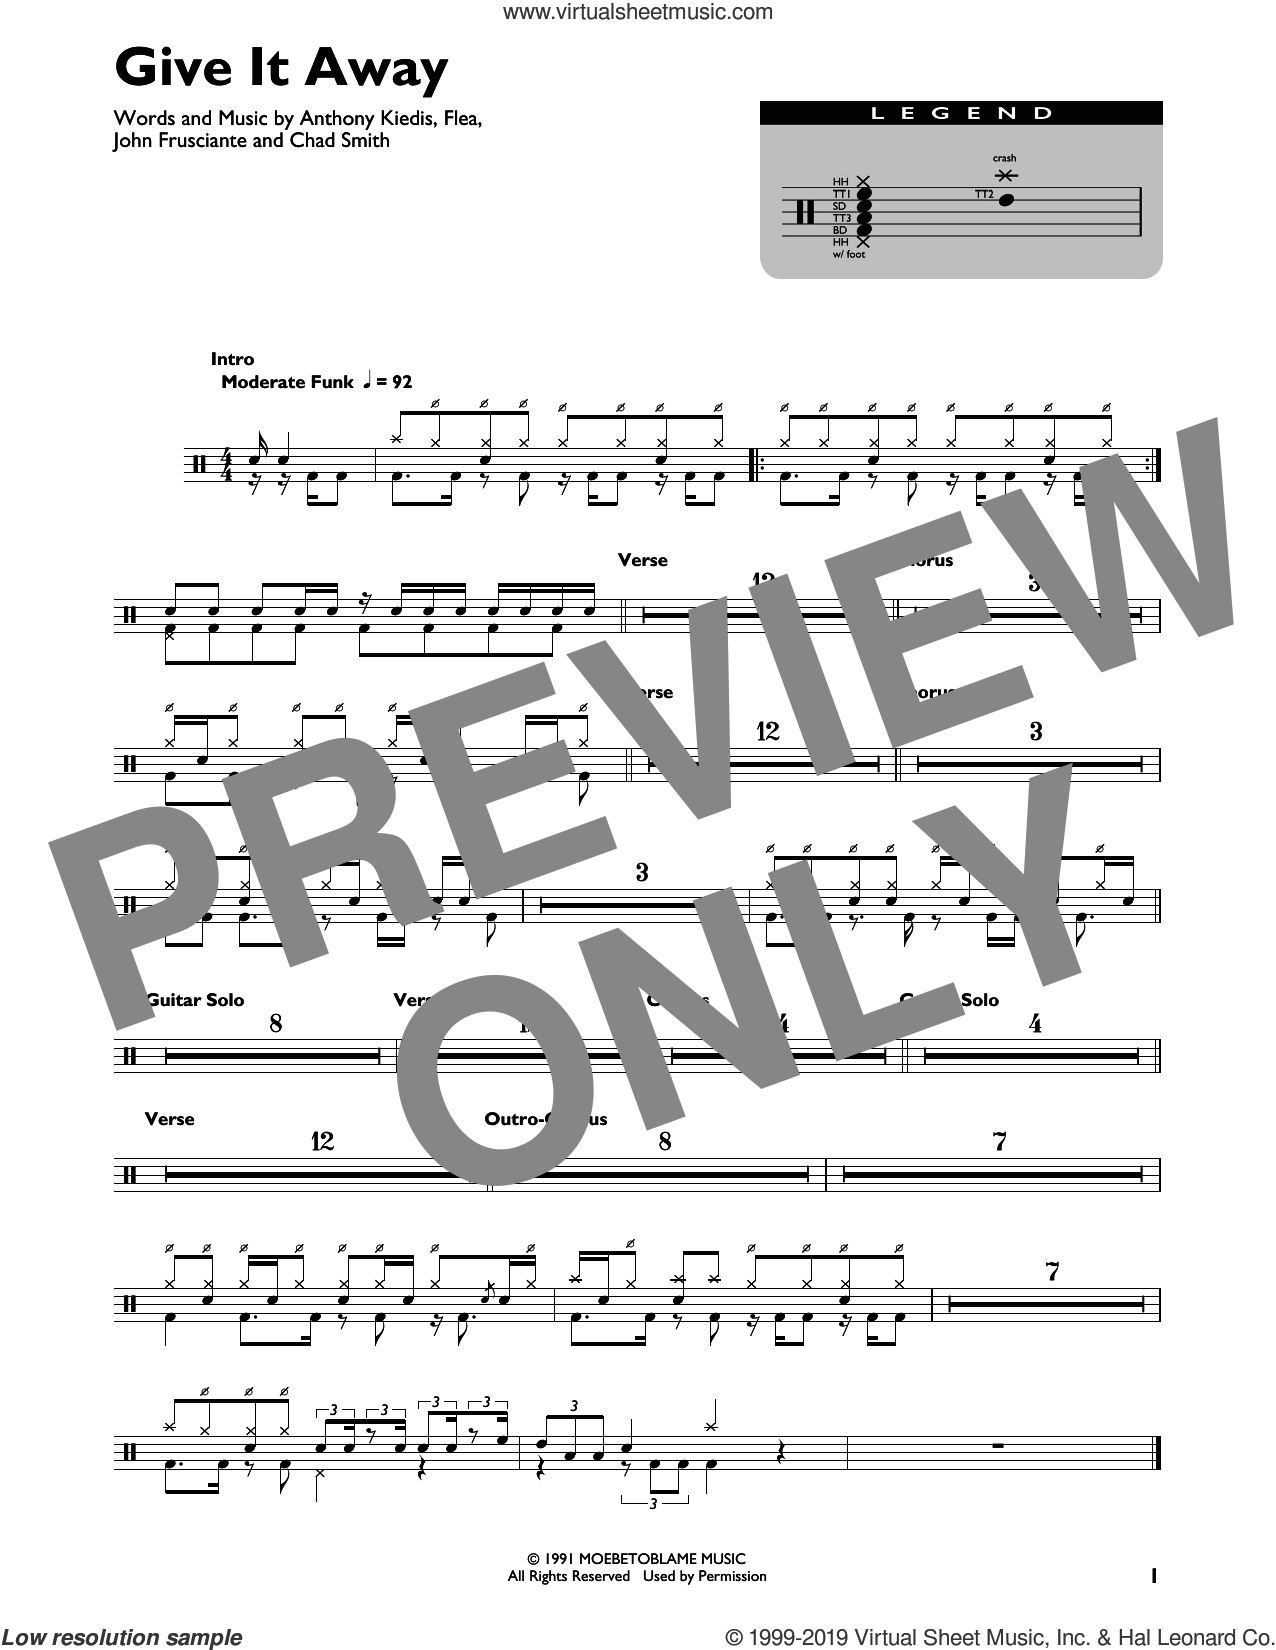 Give It Away sheet music for drums by Red Hot Chili Peppers, Anthony Kiedis, Chad Smith, Flea and John Frusciante, intermediate skill level